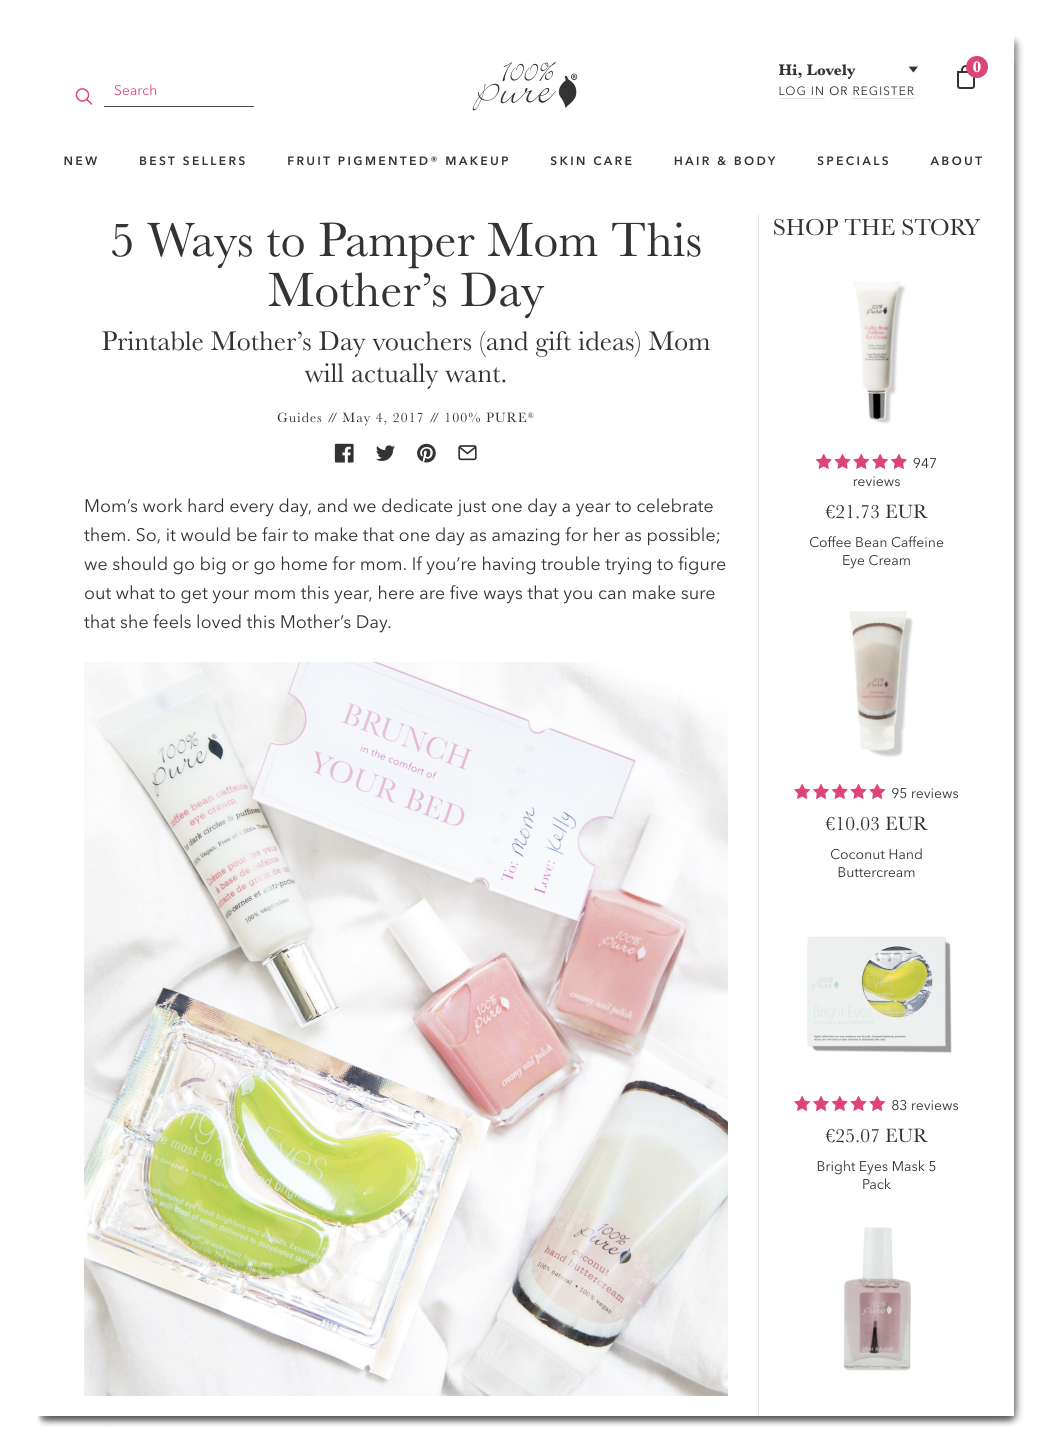 mothers day blog content 100pure